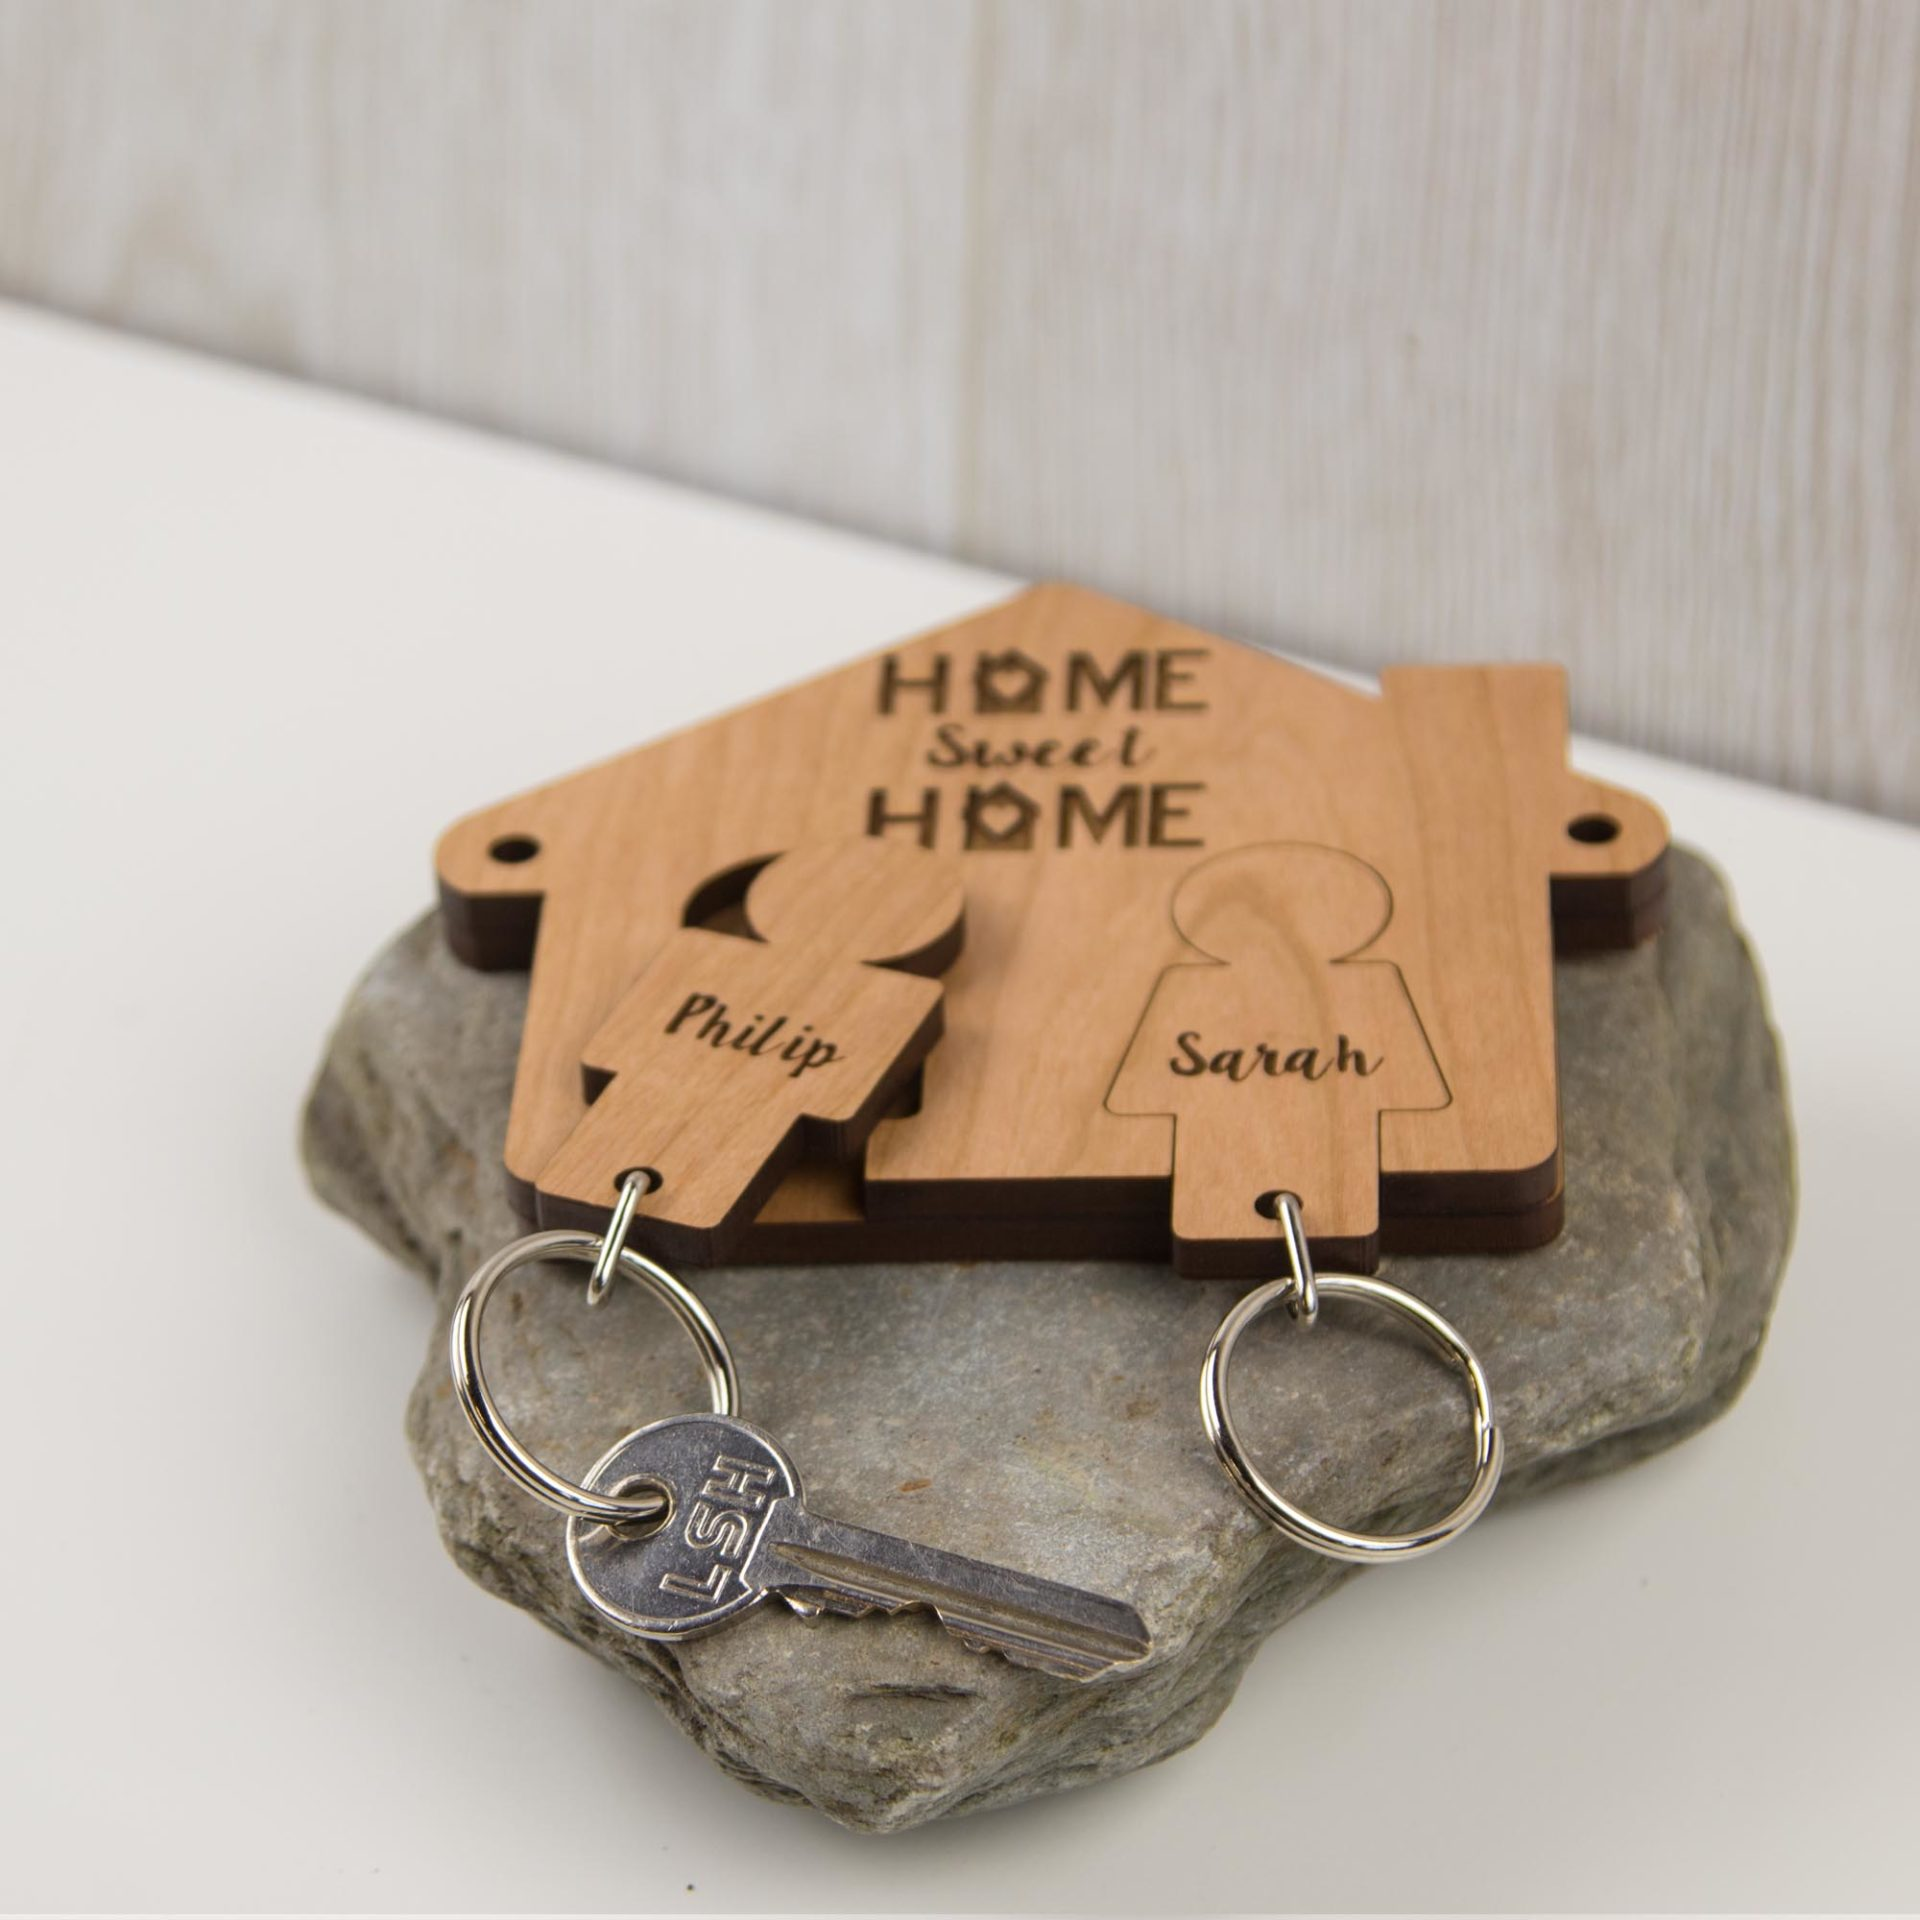 Home Sweet Home Key Holder The Laser Boutique